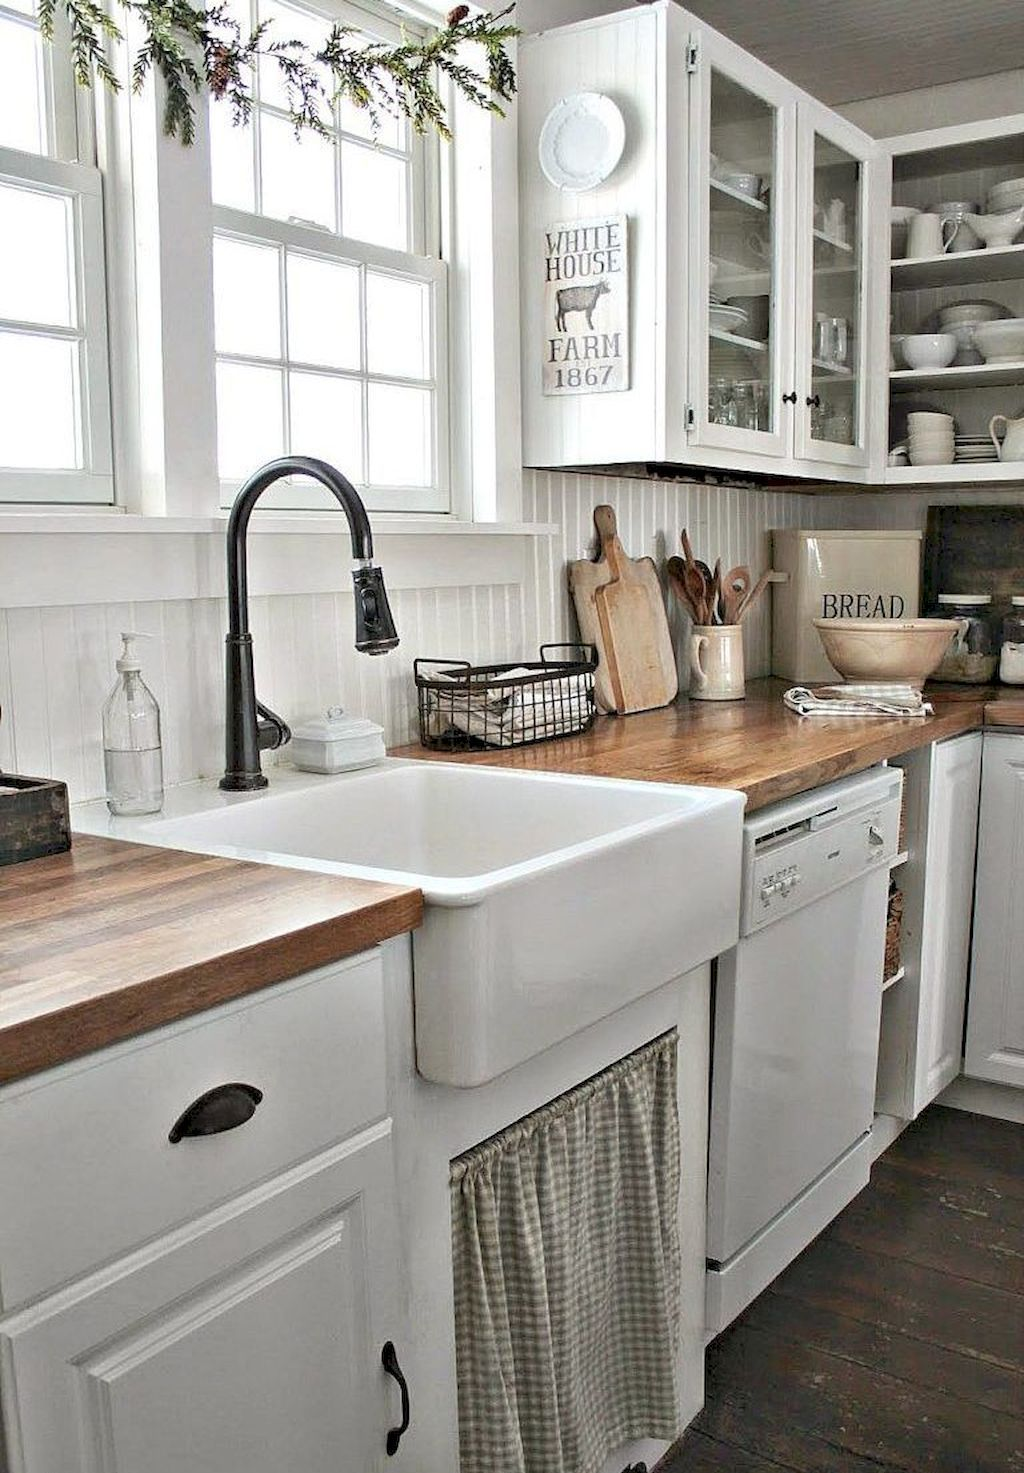 50+ Awesome farmhouse kitchen Decor Remodel | Home Style & Staging on kitchen furniture ideas, hgtv kitchen ideas, small kitchen decorating ideas, kitchen tables ideas, kitchen photography ideas, kitchen declutter ideas, kitchen signs ideas, kitchen facelift ideas, kitchen rehab ideas, kitchen planning ideas, kitchen accessory ideas, kitchen configuration ideas, kitchen design ideas, kitchen renovations ideas, kitchen seating ideas, kitchen set ideas, kitchen setting ideas, wood ceiling kitchen ideas, kitchen marketing ideas, kitchen electrical ideas,